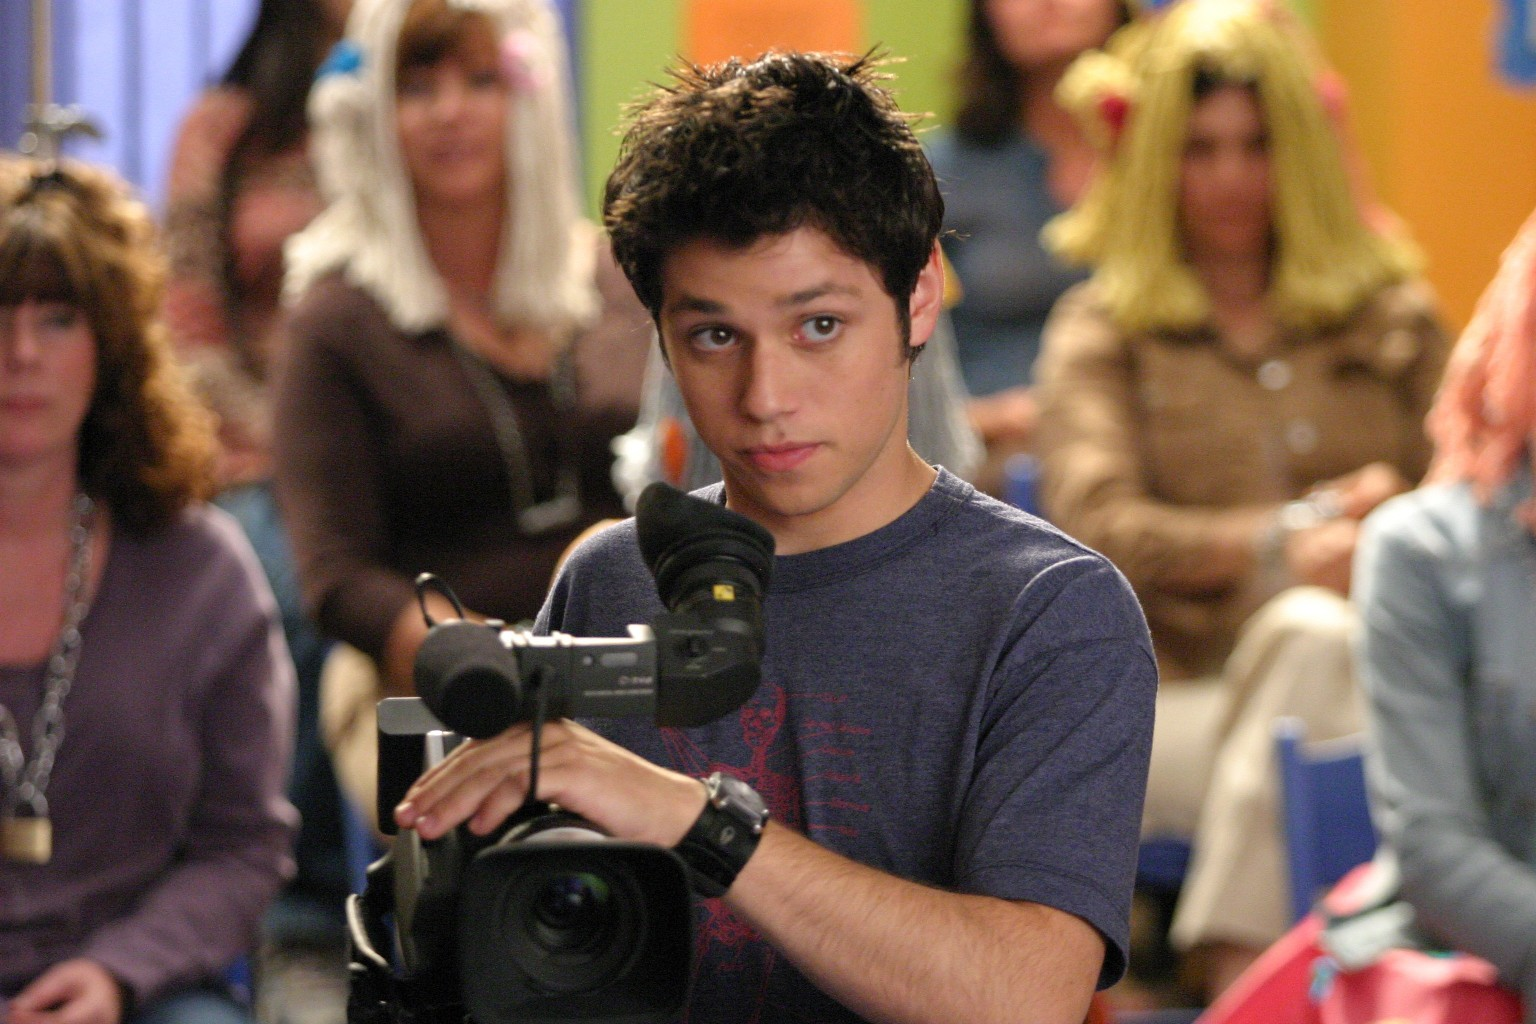 Ricky Ullman Then And Now Ricky ullman   quot Ricky Ullman Then And Now